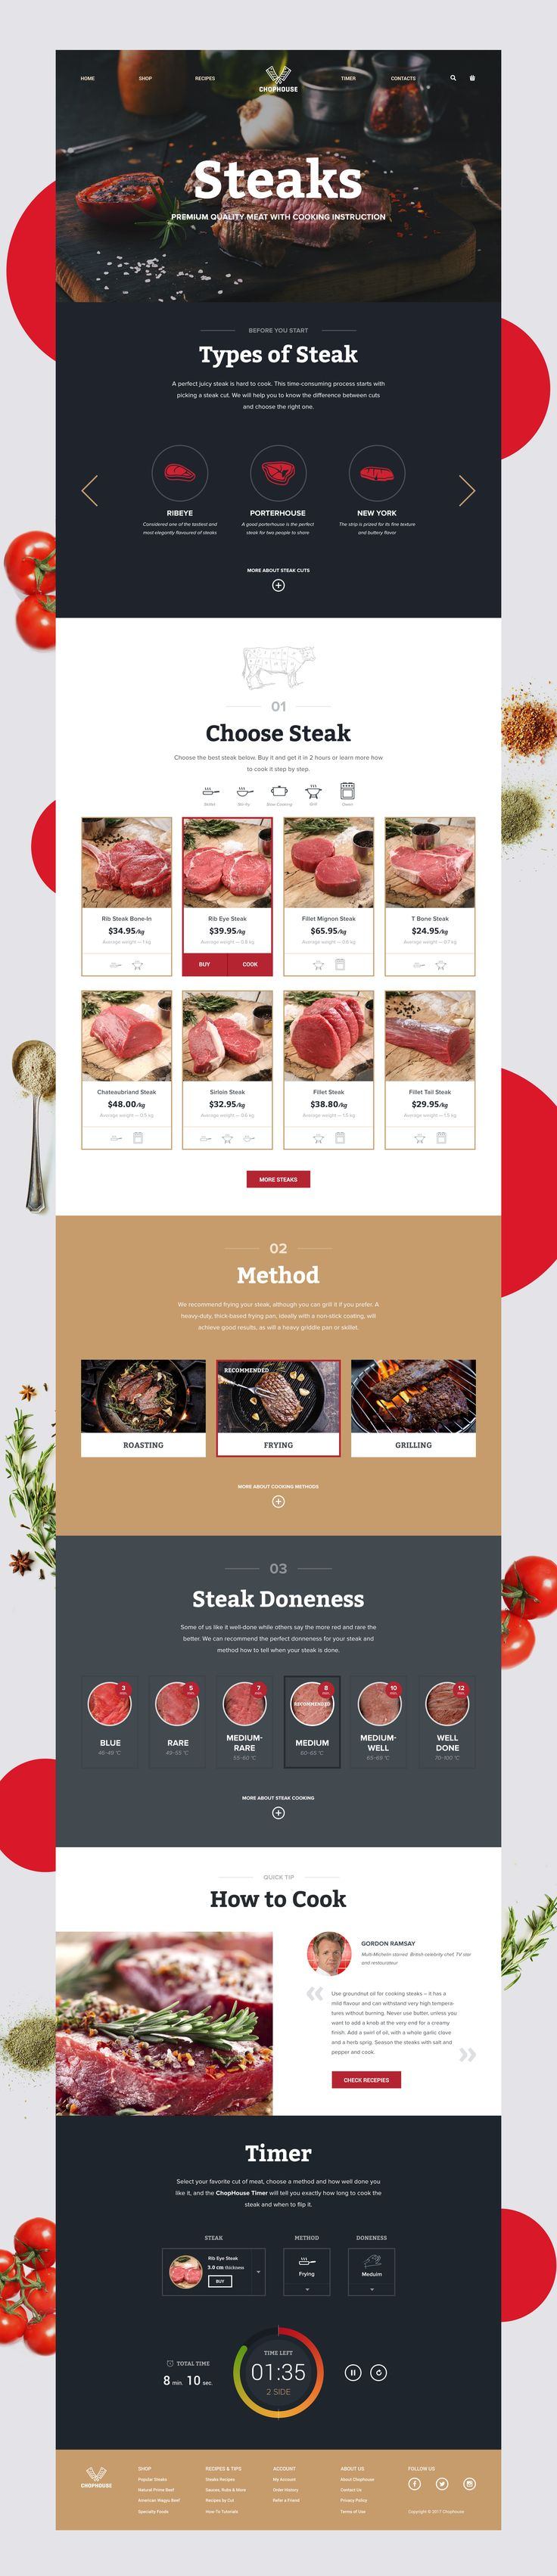 Chophouse is a concept project about steaks. It's a store with step by step instruction how to cook steaks including timer. I hope you'll enjoy this project!